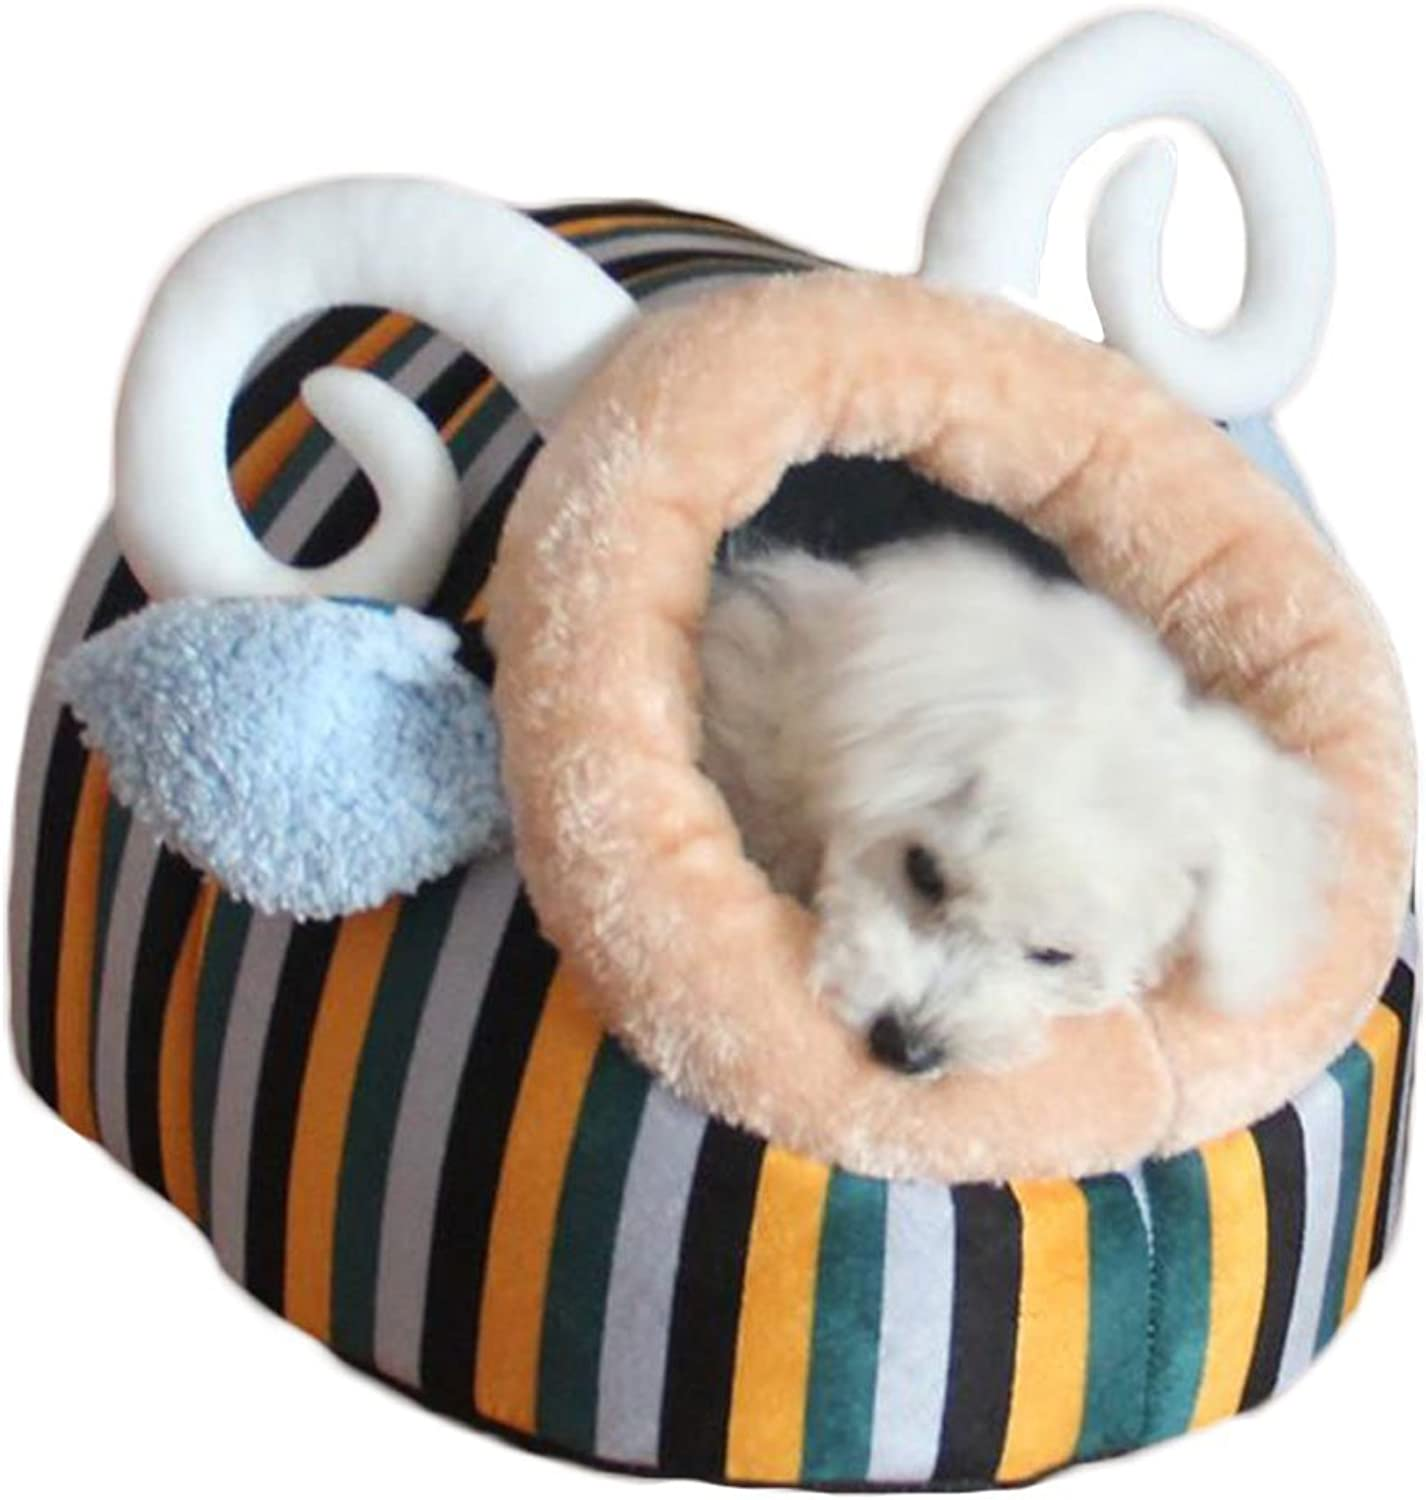 EEvER Comfortable Washable Pet Bed Dog Cat Pet House Bed  Indoor Doghouse Bed Cute Soft Puppy Rabbits Cave Mat Cushion for Small Animal Hut  Sponge (M,bluee Sheep)